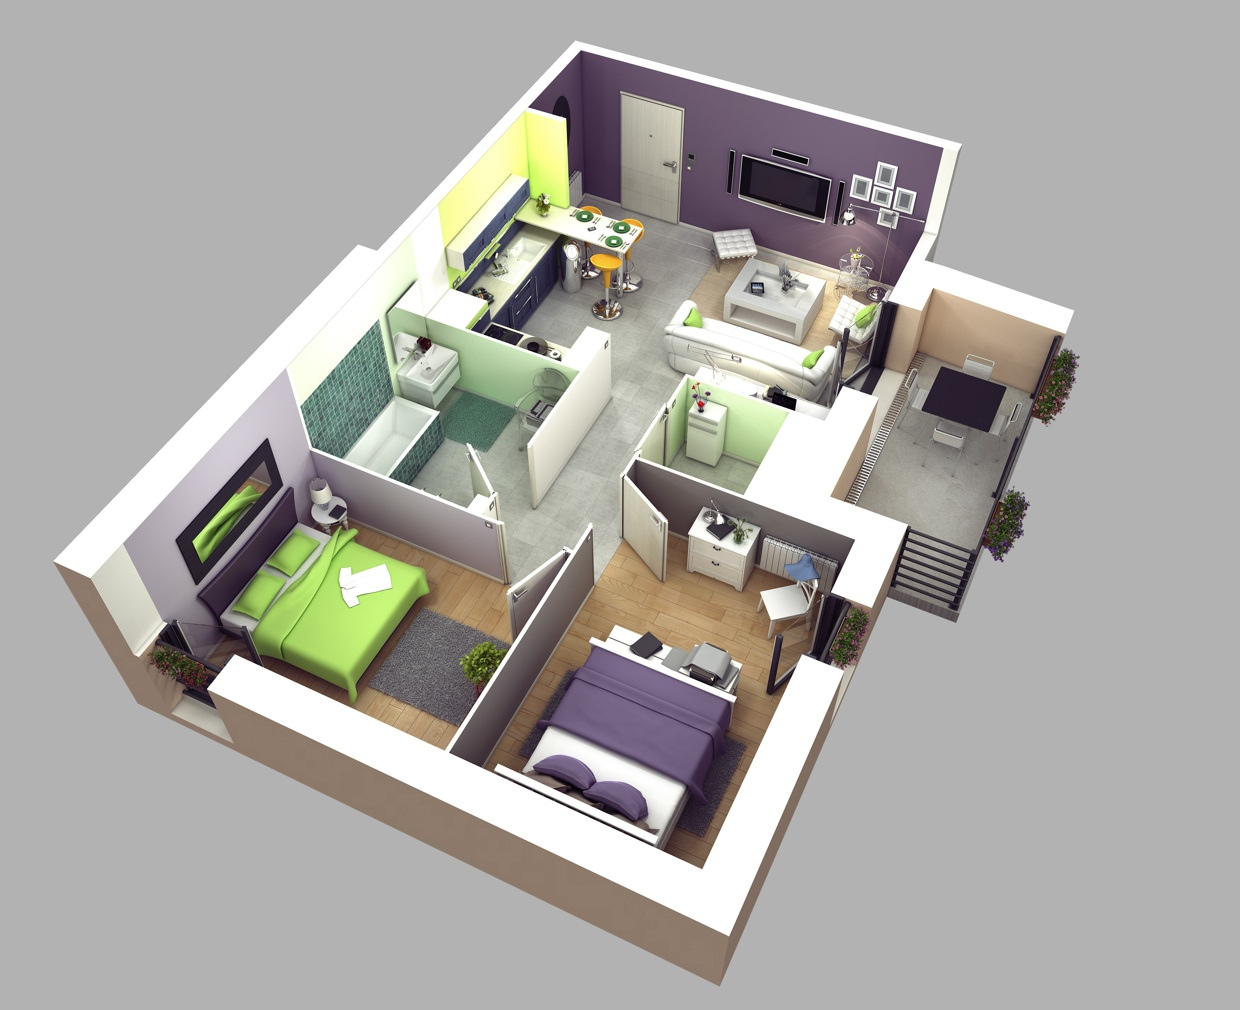 2 bedroom apartmenthouse plans - House Design Plan